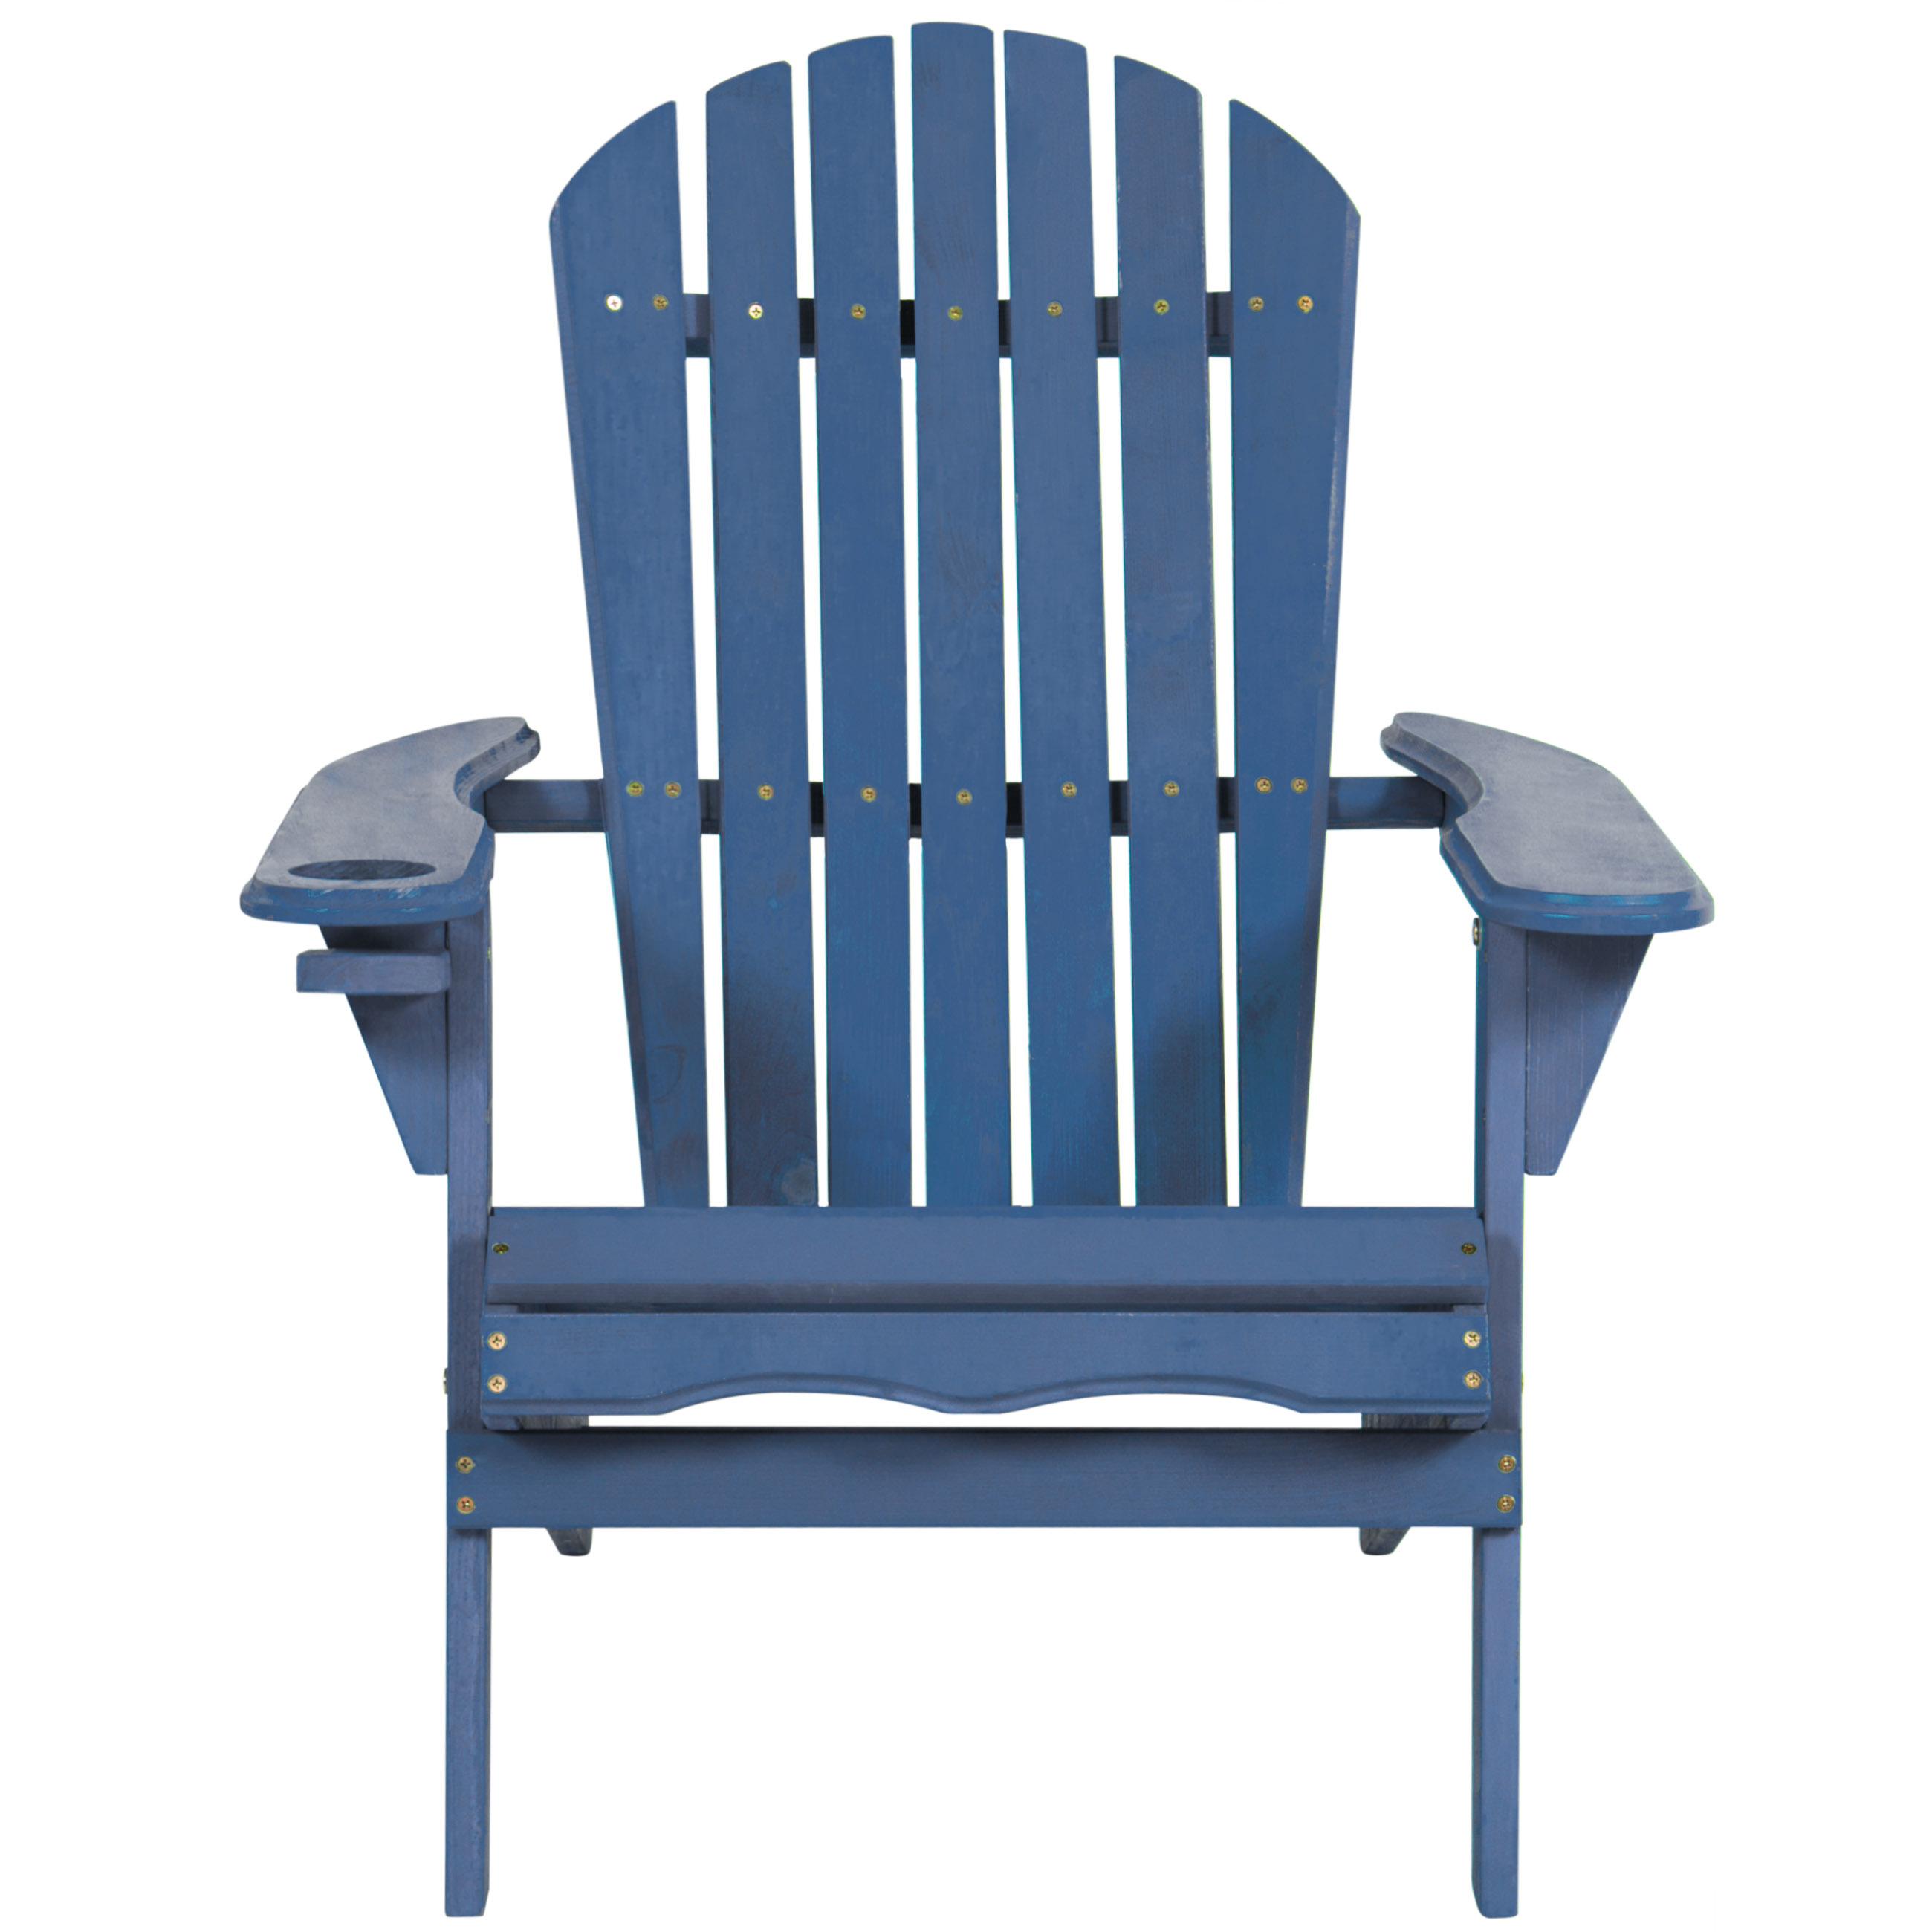 Outdoor Patio Folding Wooden Adirondack Chair W Cup